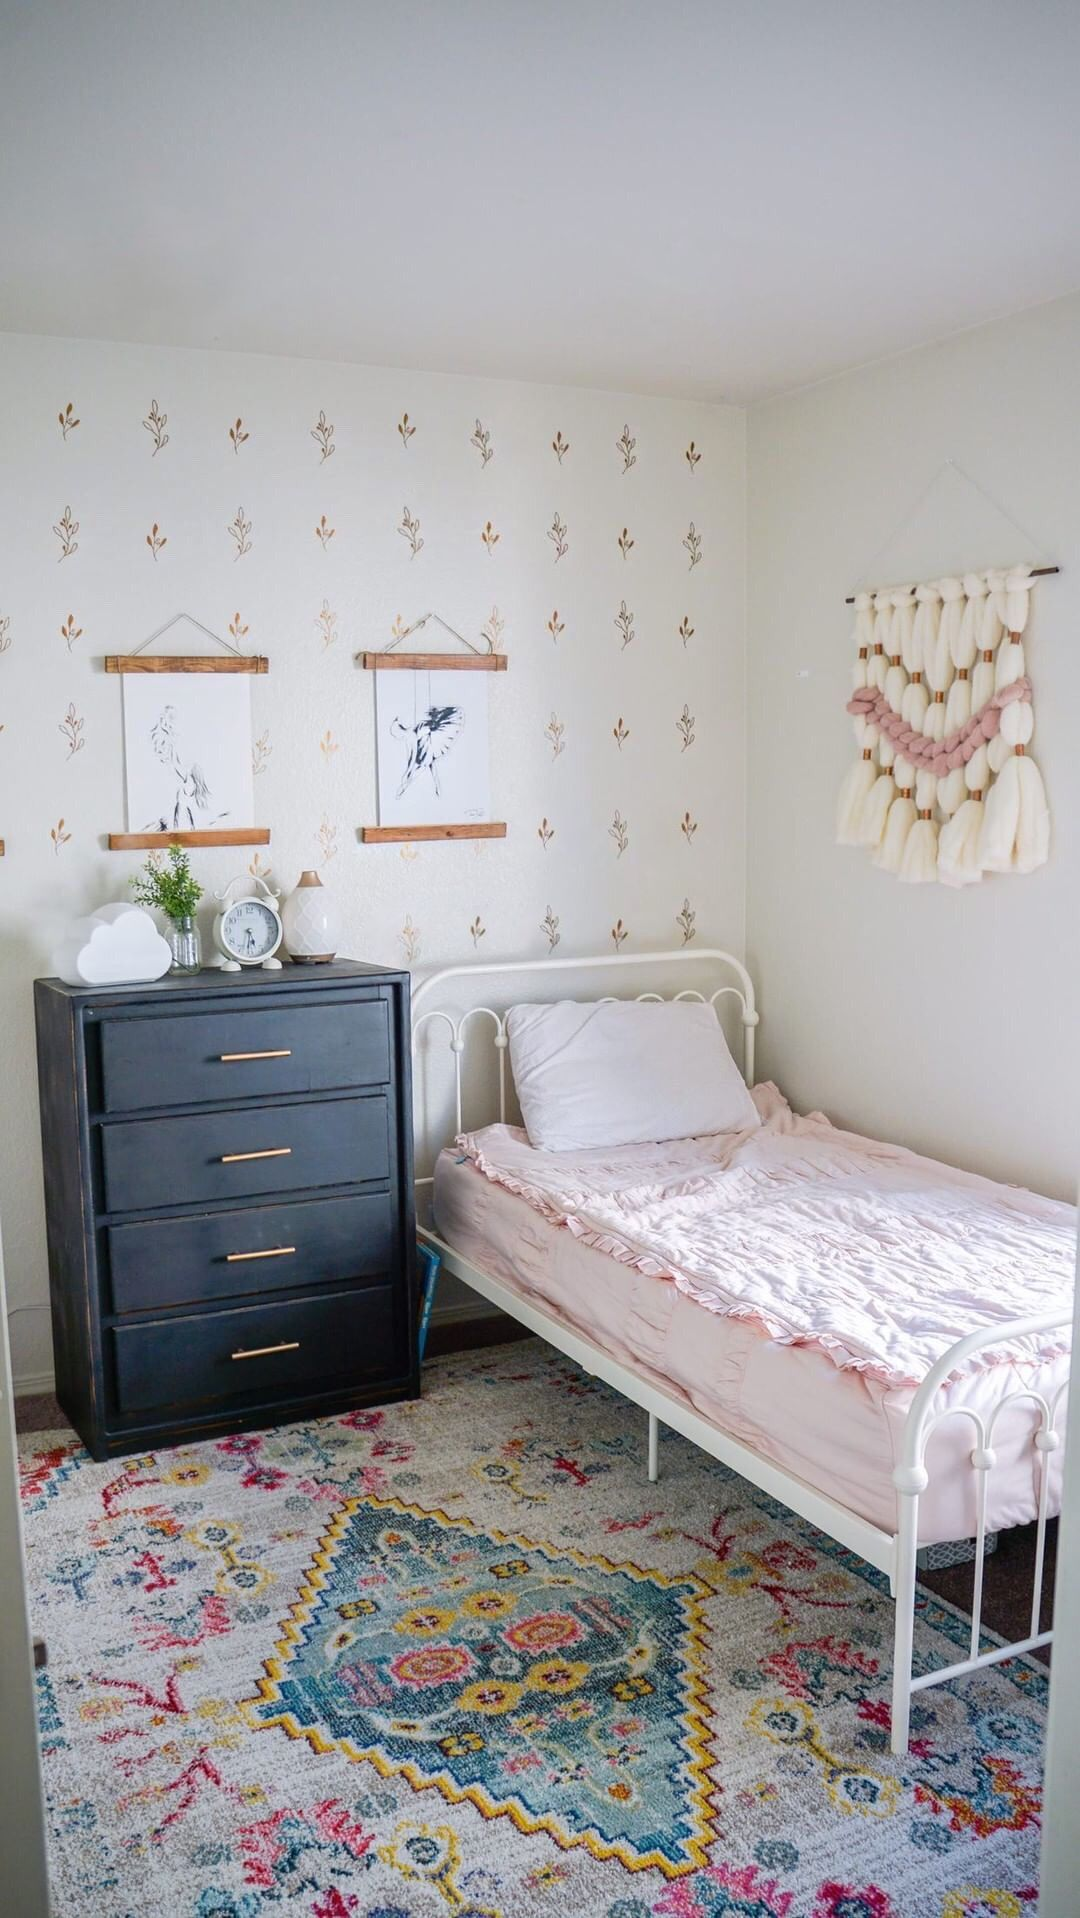 Olive Branch wallpaper, wall decals in copper. Cute boho